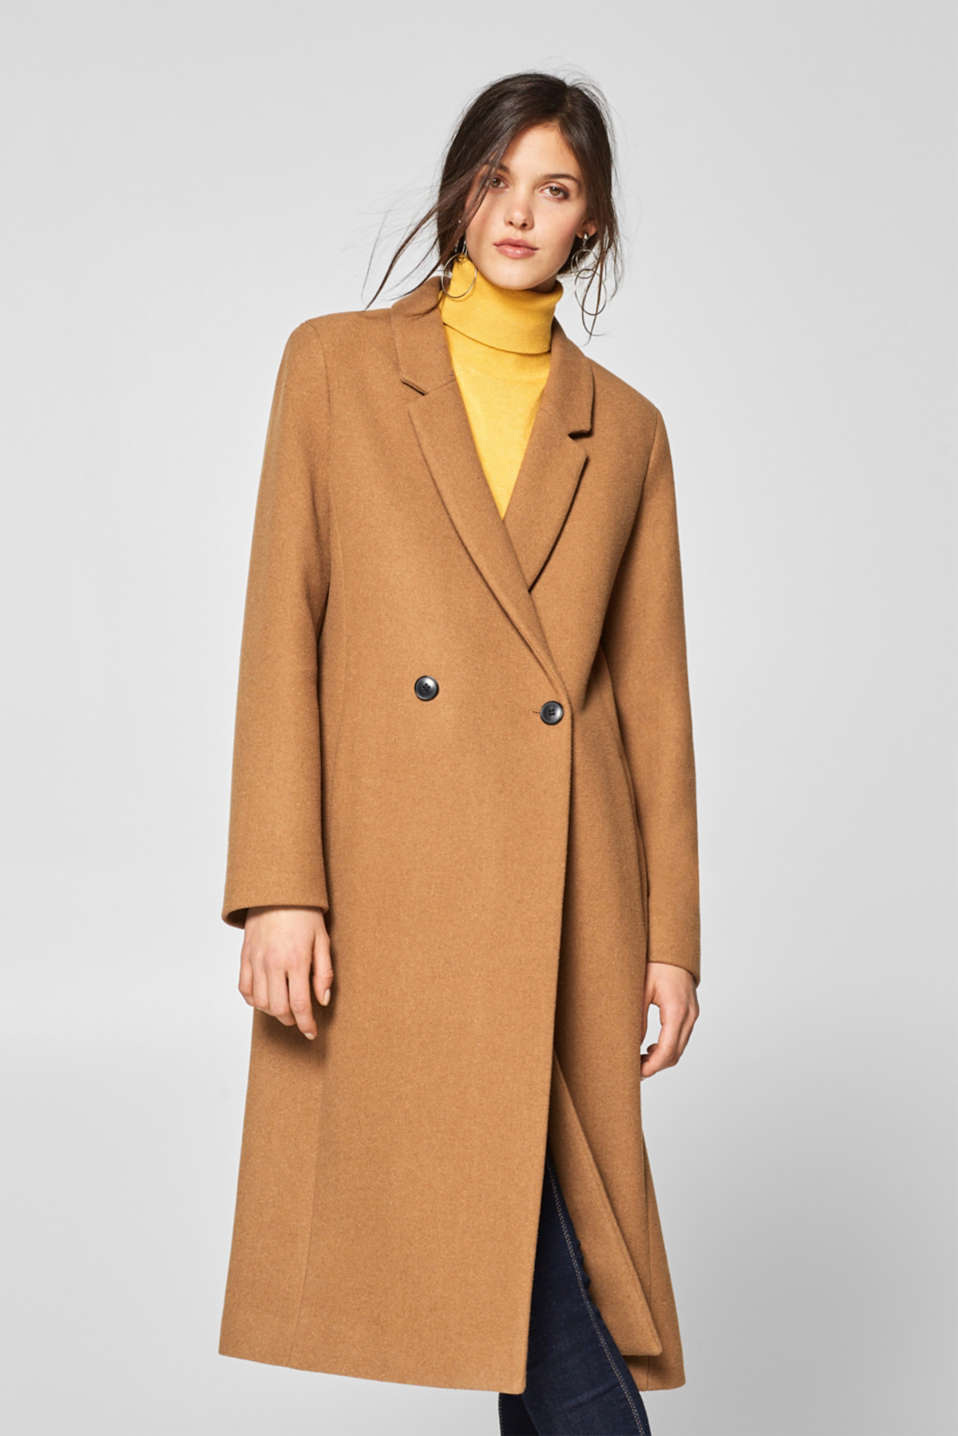 Esprit - Made of blended wool: long, double-breasted coat